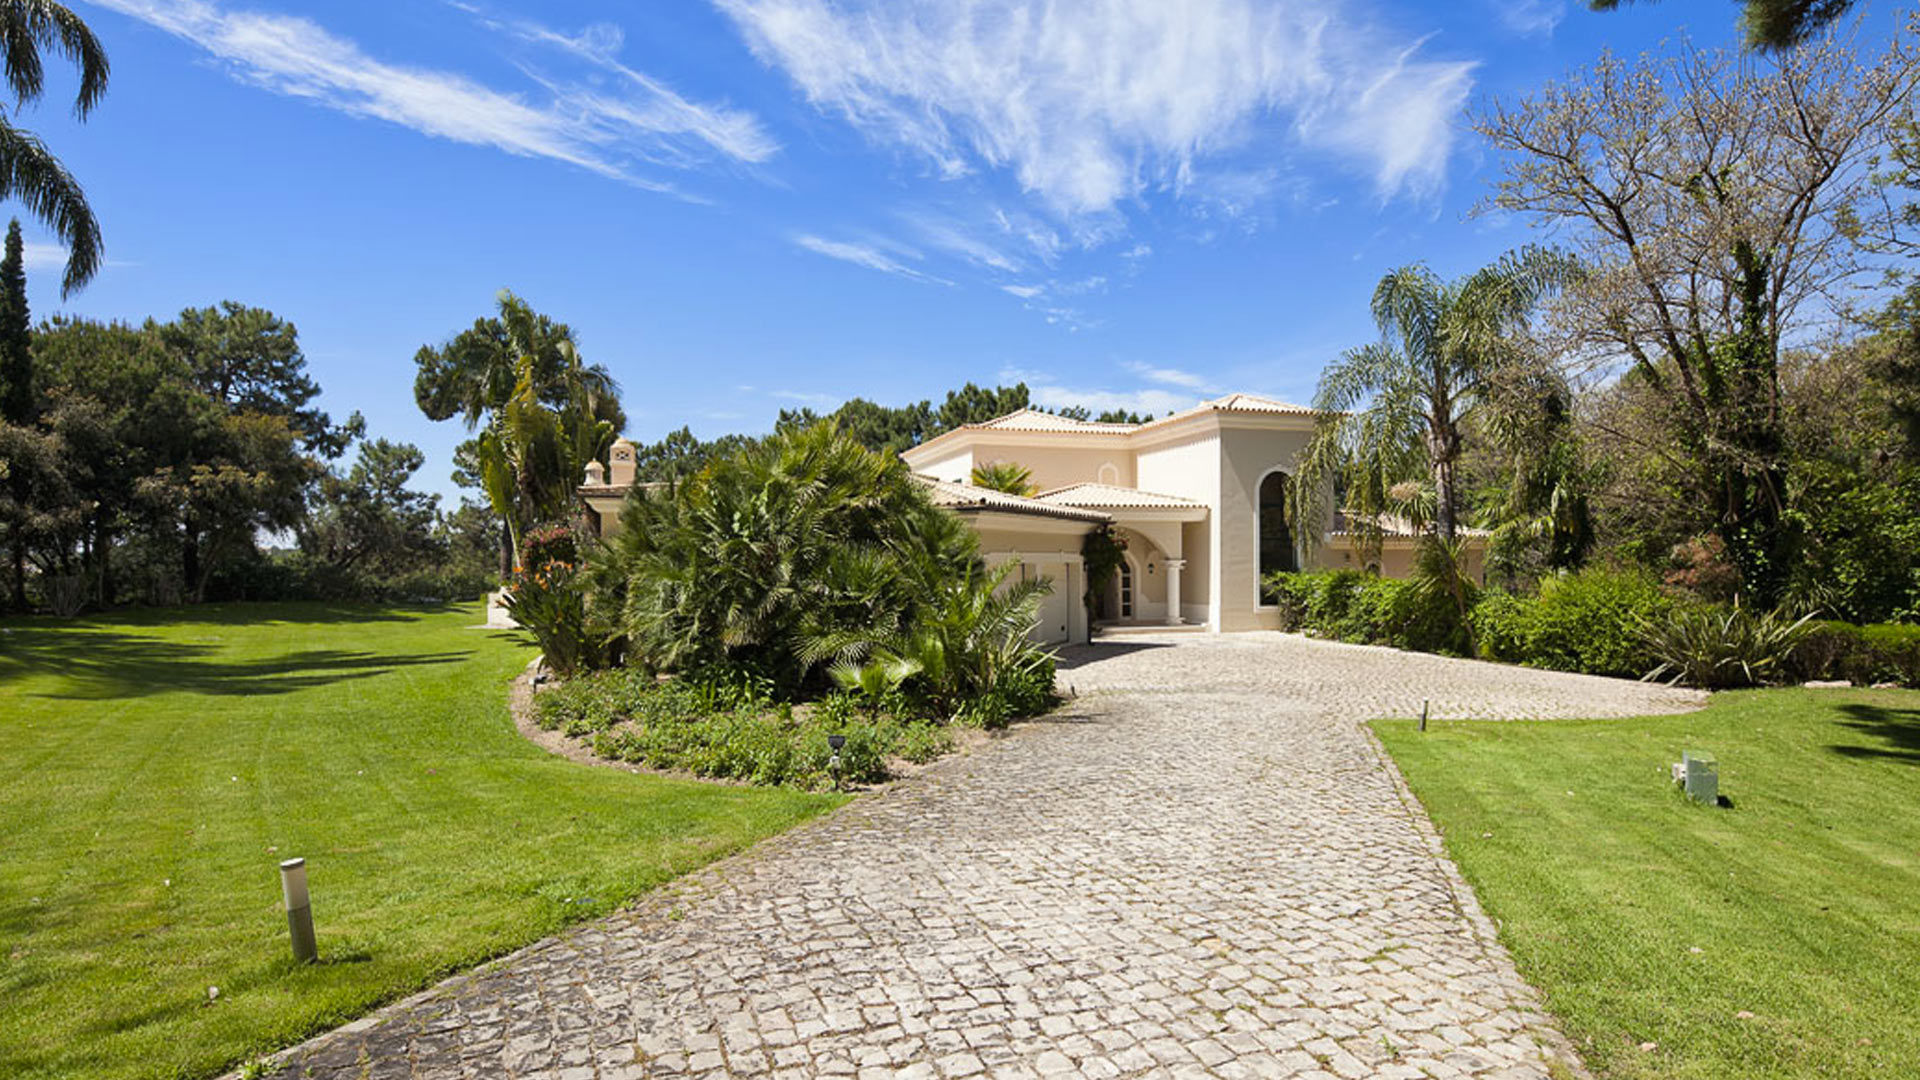 Villa Villa Lago Lake, Rental in Algarve